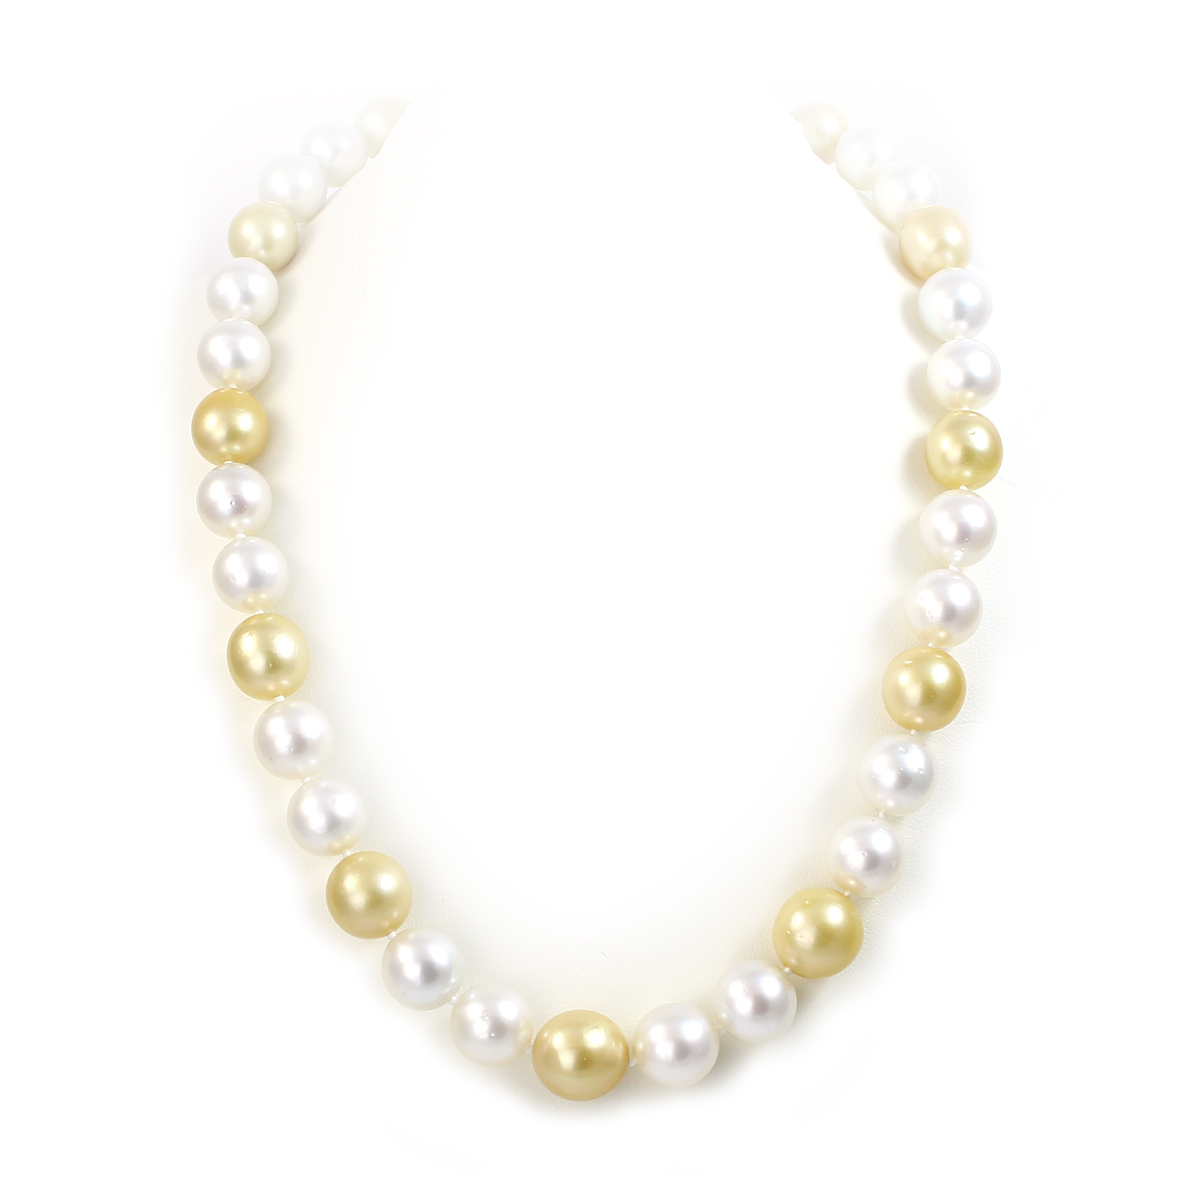 18 Karat Yellow Gold White and Gold South Sea Pearl Necklace